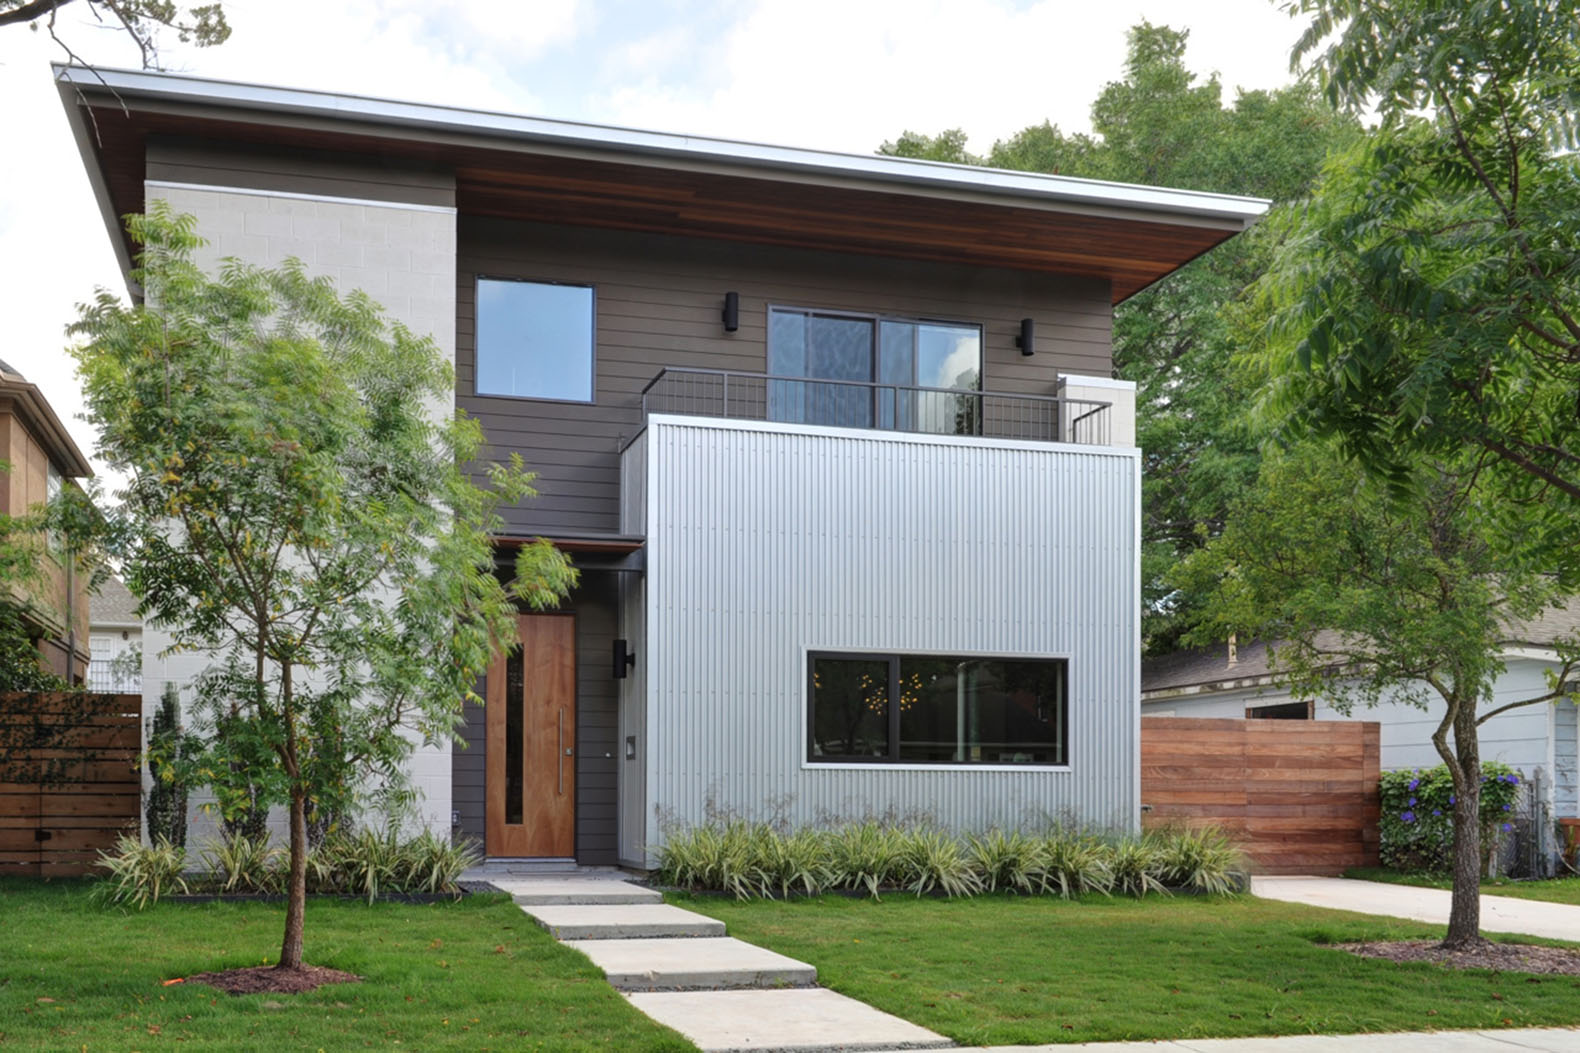 Houston's Emory House is a spatially-efficient marvel on a tight lot